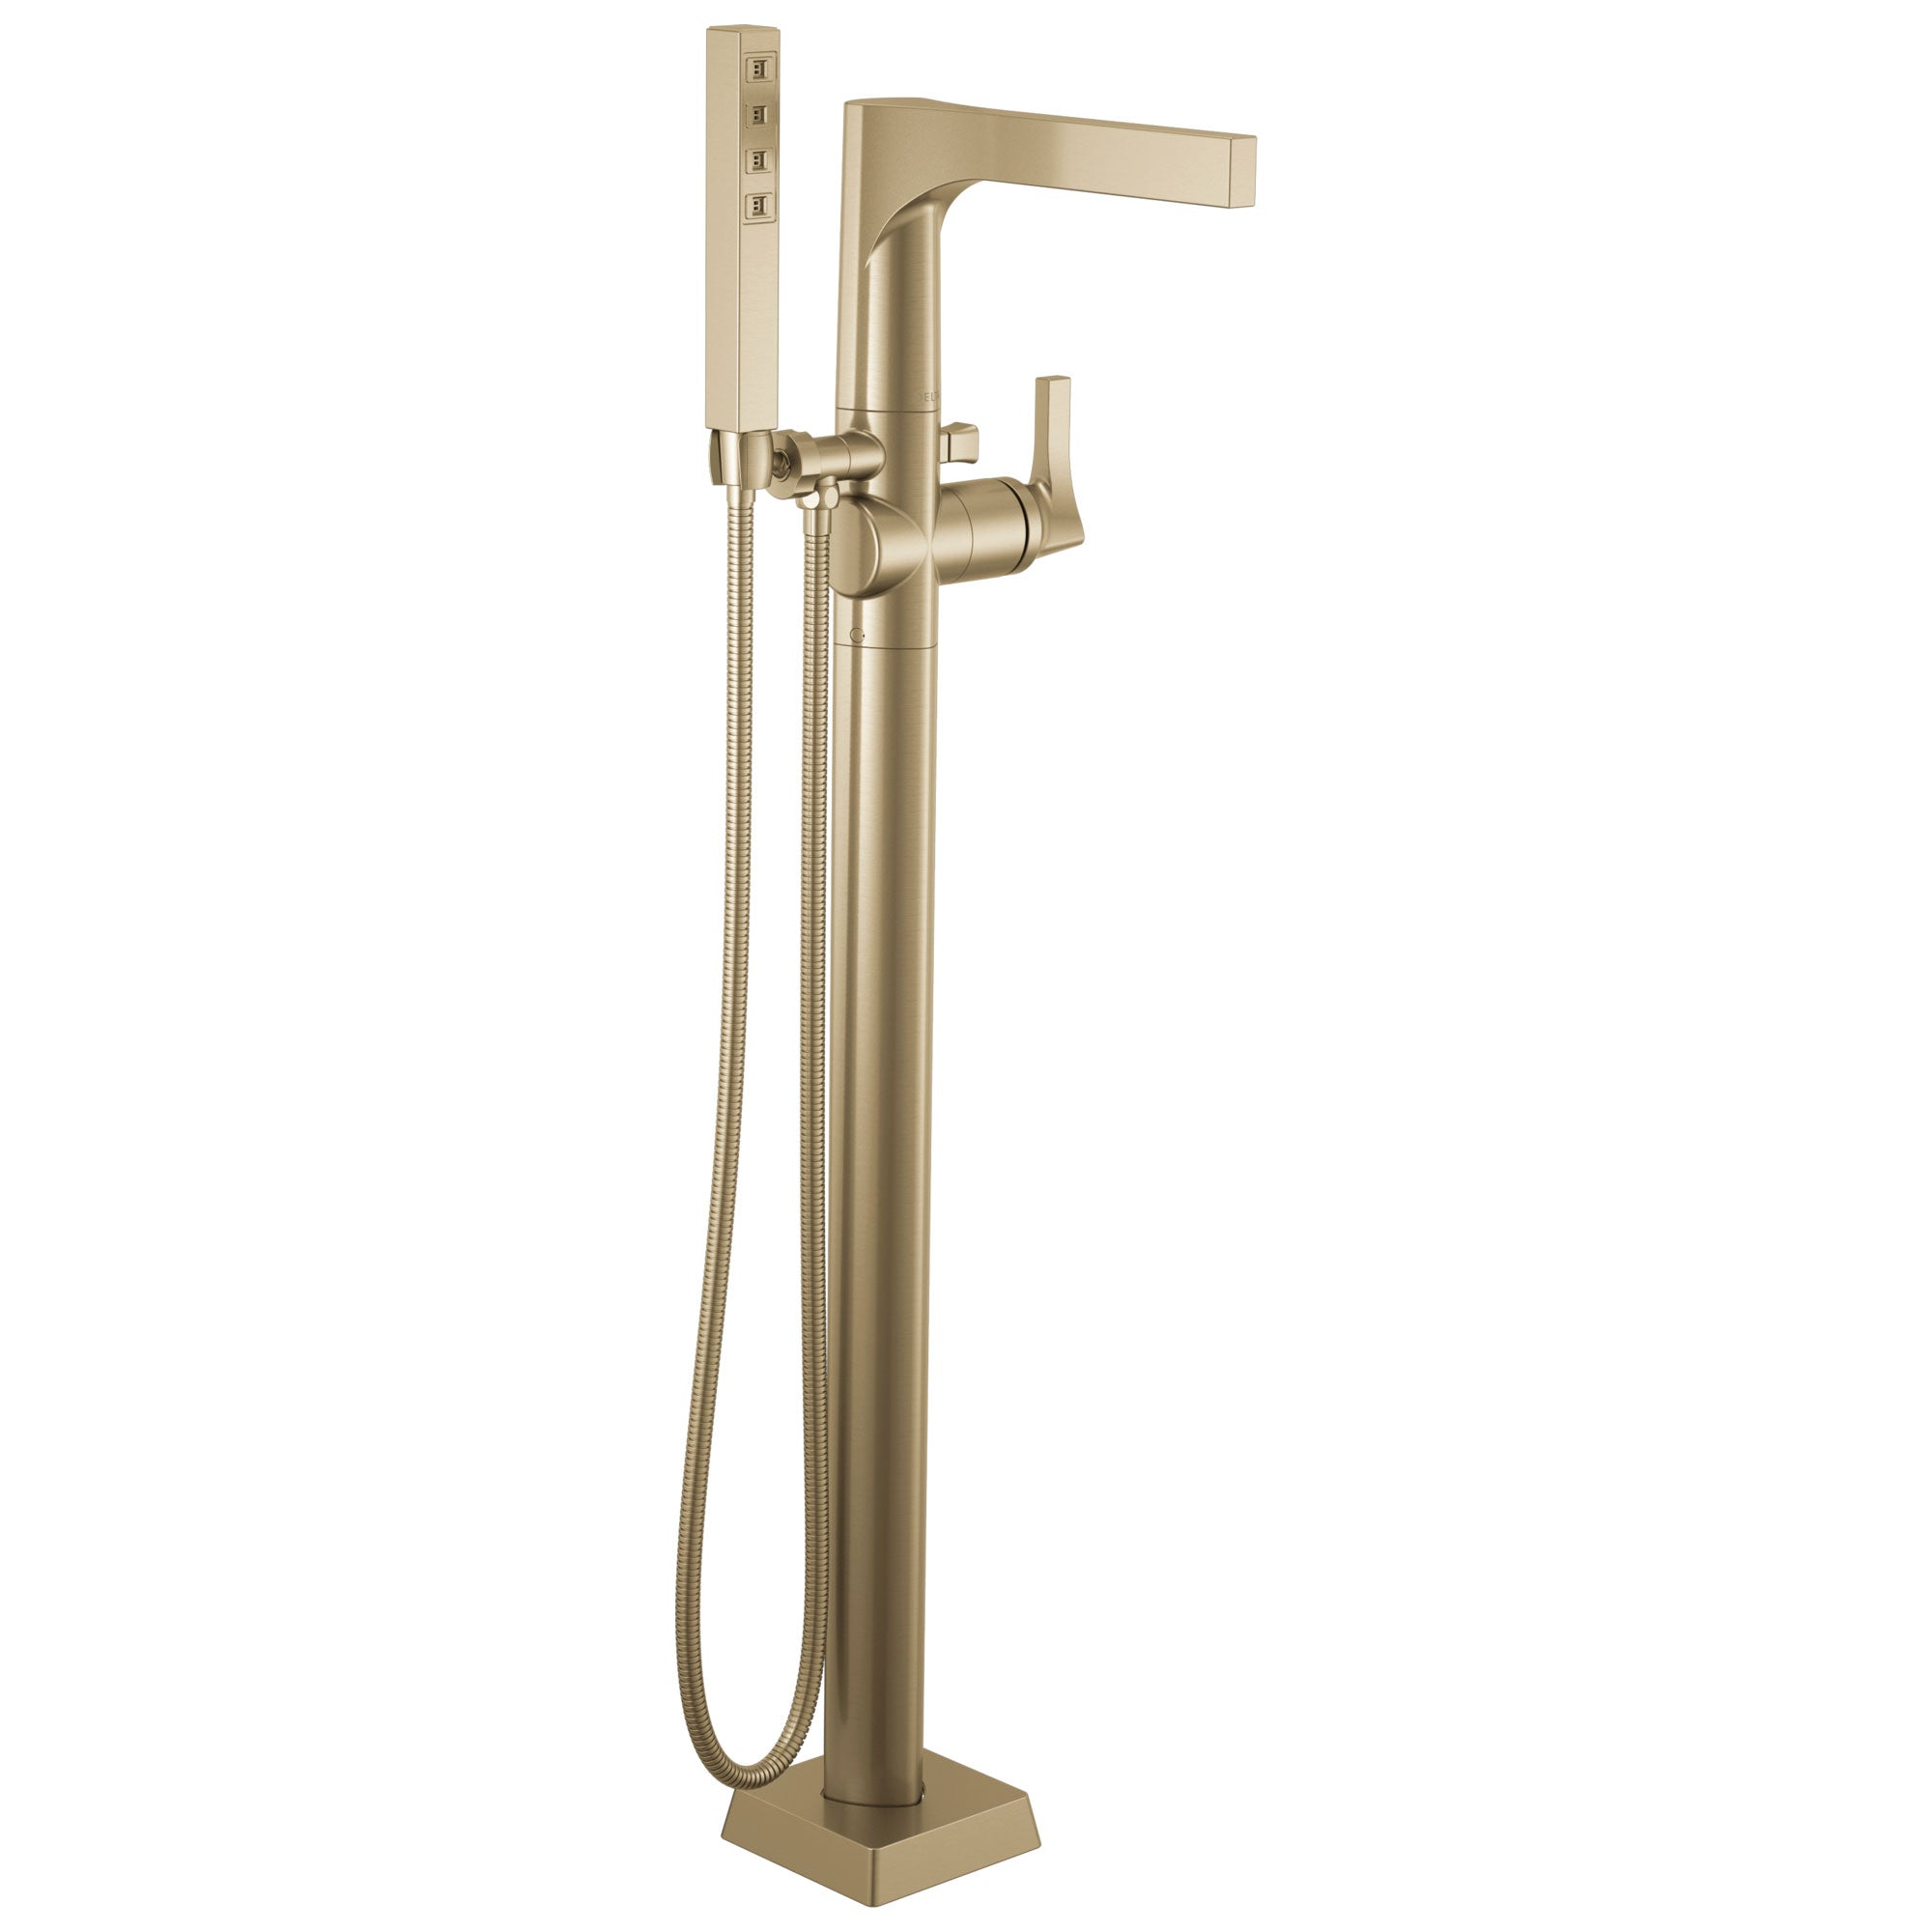 Delta Zura Champagne Bronze Finish Freestanding Floor Mount Tub Filler Faucet with Hand Shower Includes Handle, Cartridge, and Valve D3607V